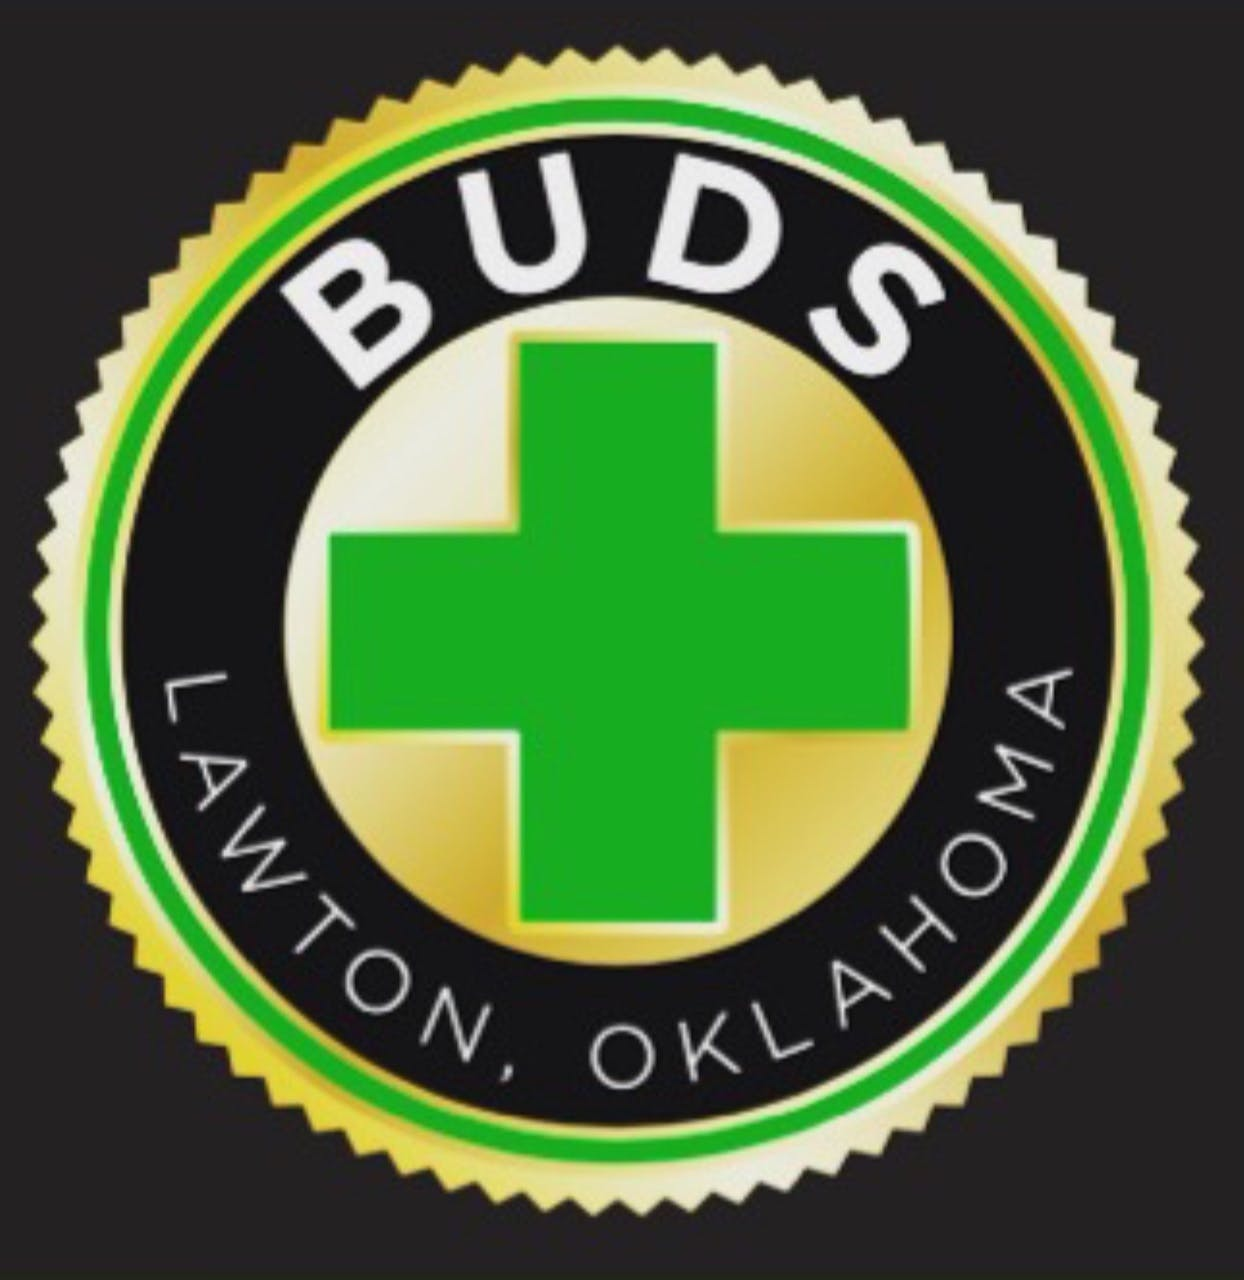 Buds CBD and Dispensary - Medical Marijuana Doctors - Cannabizme.com